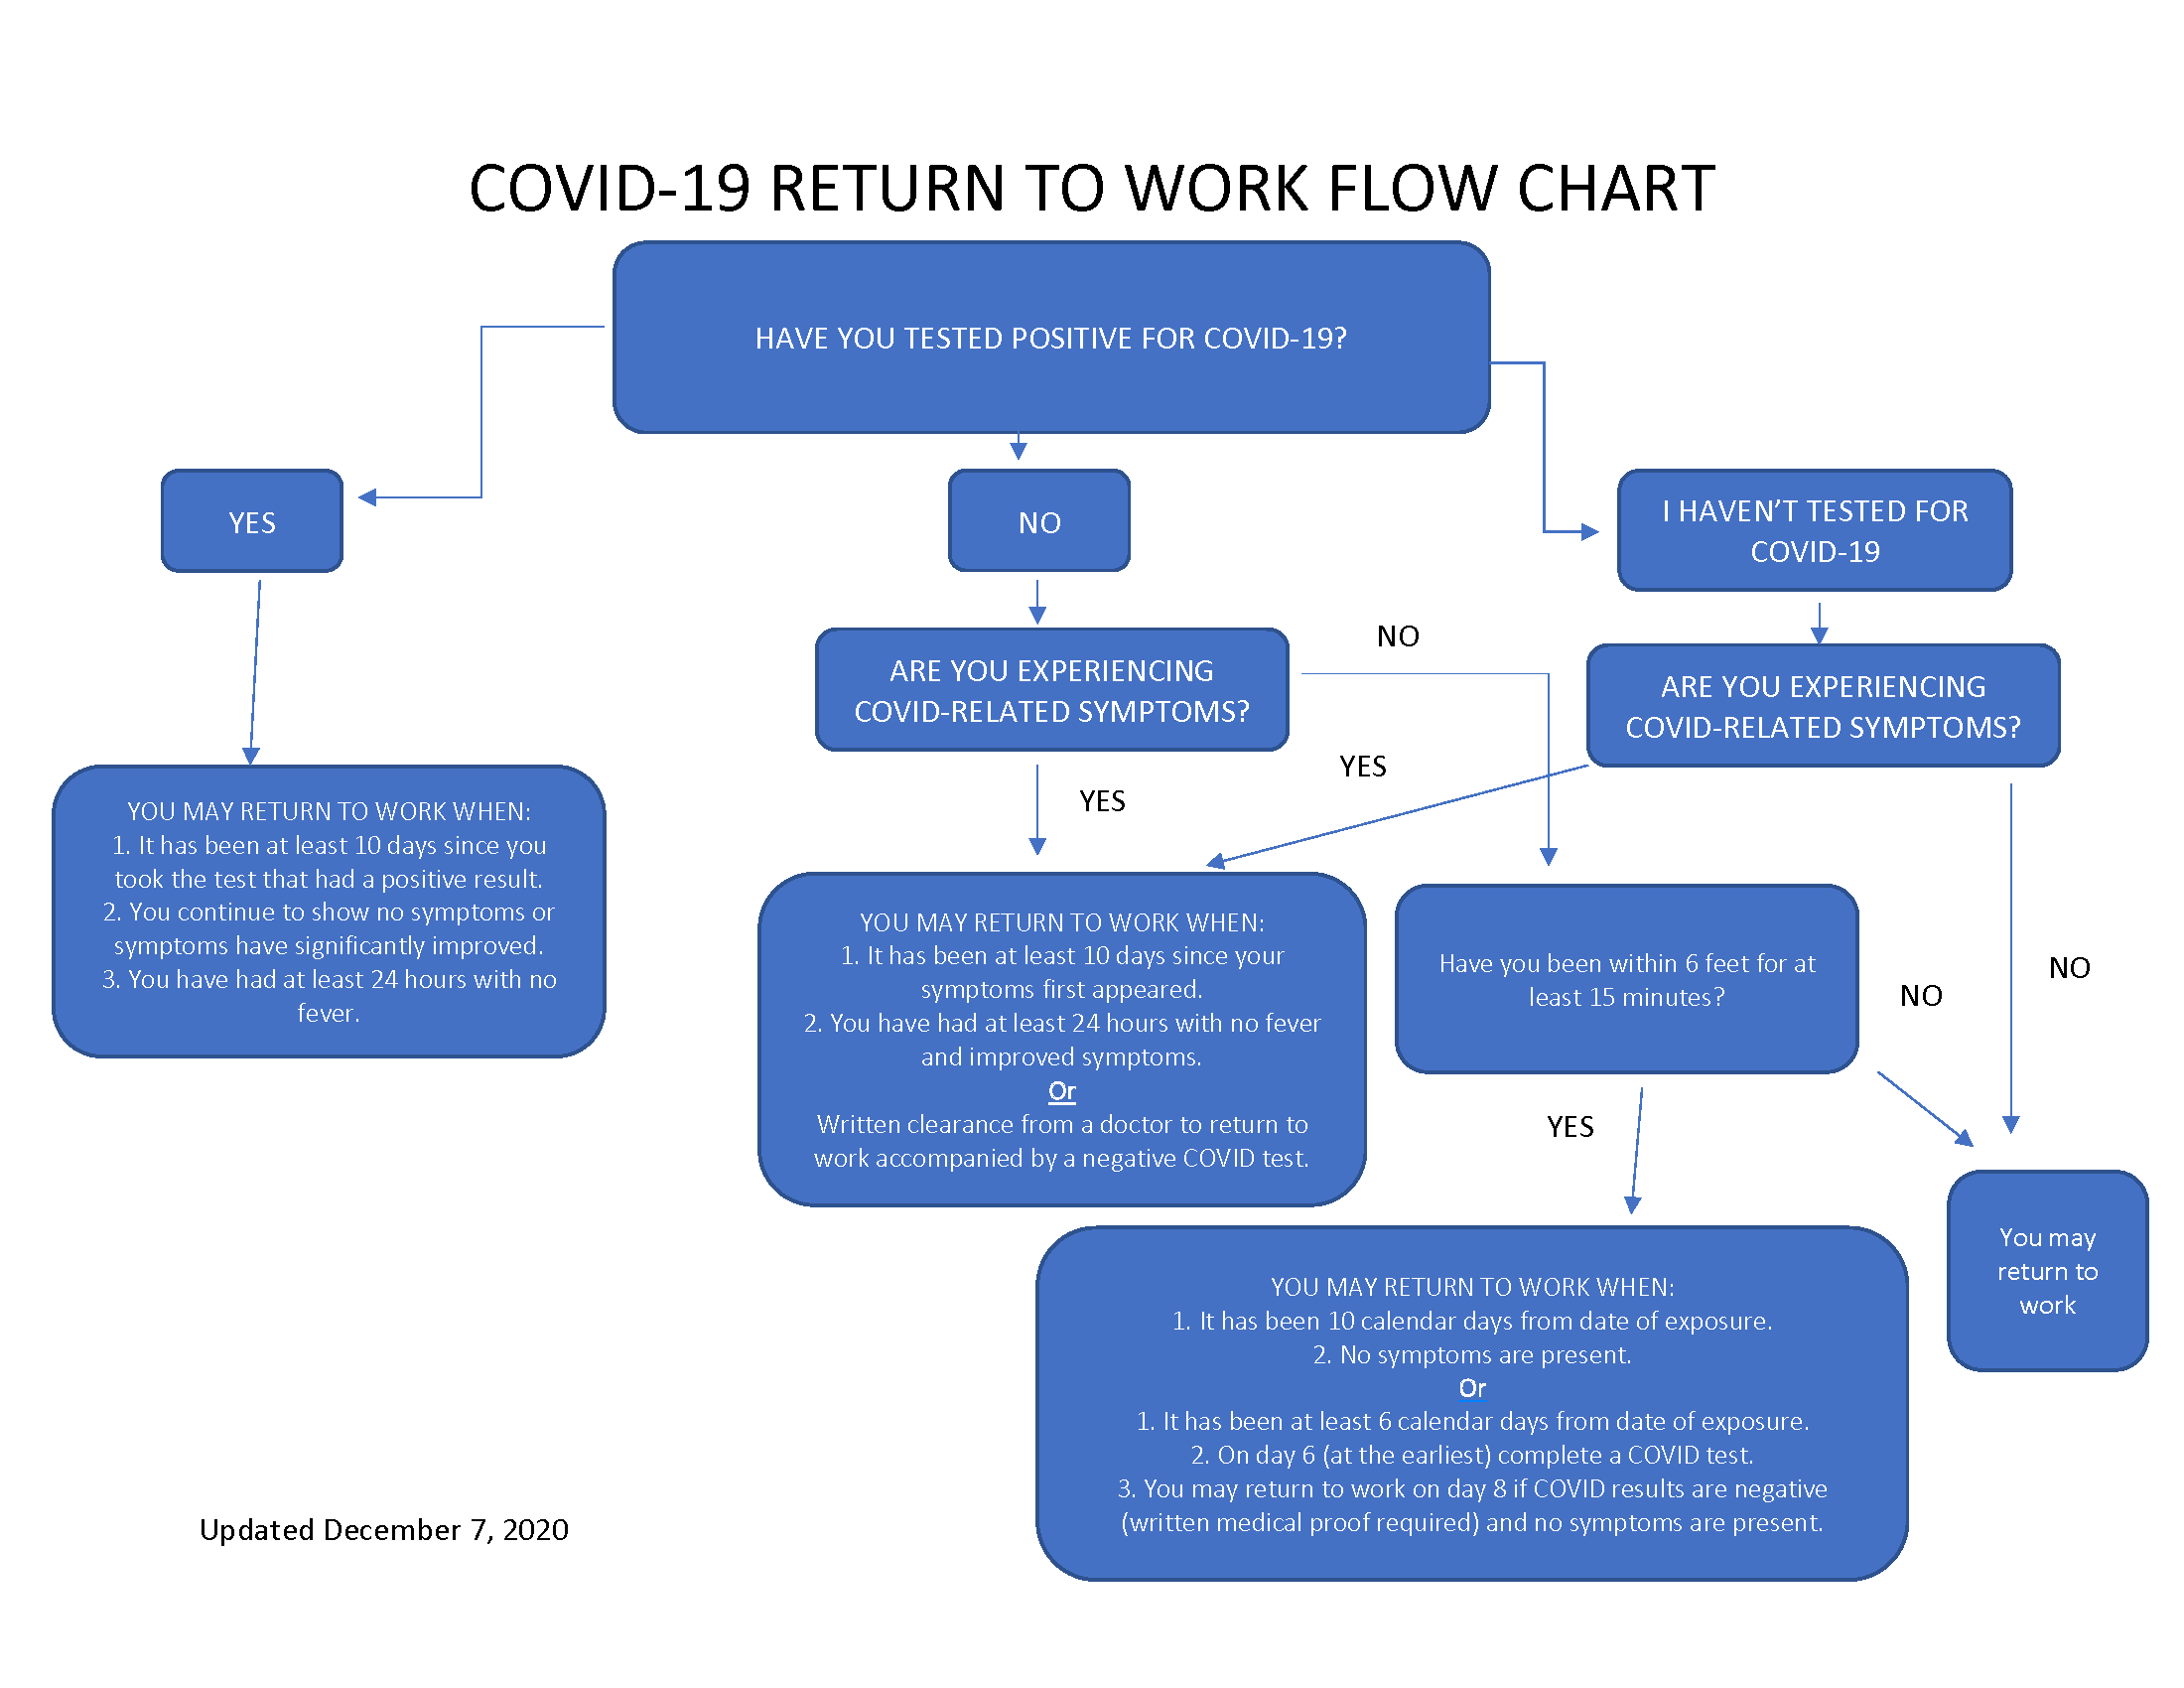 COVID-19 Return to Work Flowchart 12-7-2020